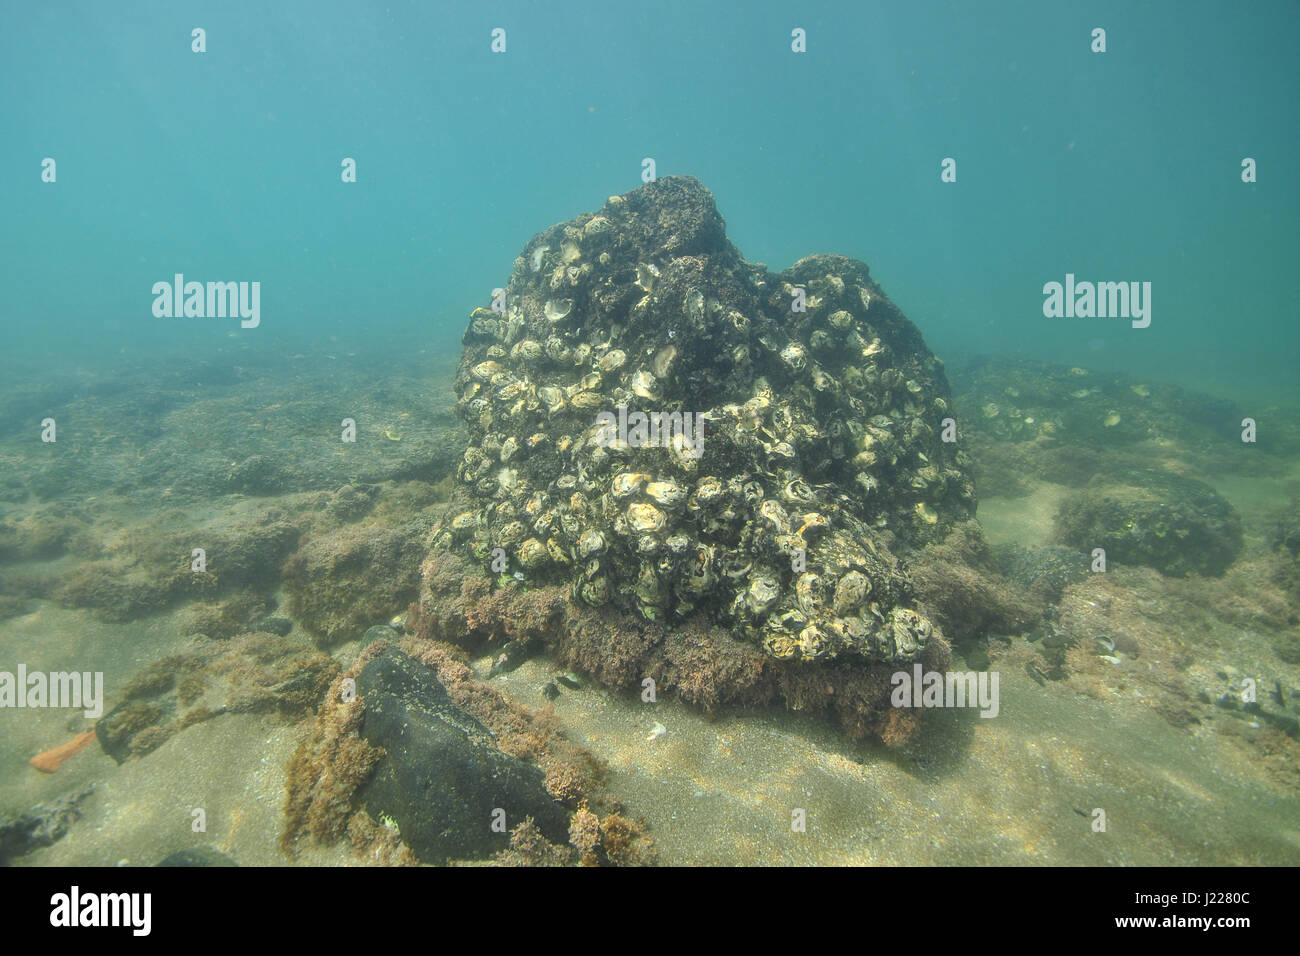 Dark volcanic rock covered with Pacific oyster shells on flat bottom in tidal zone near shore. - Stock Image